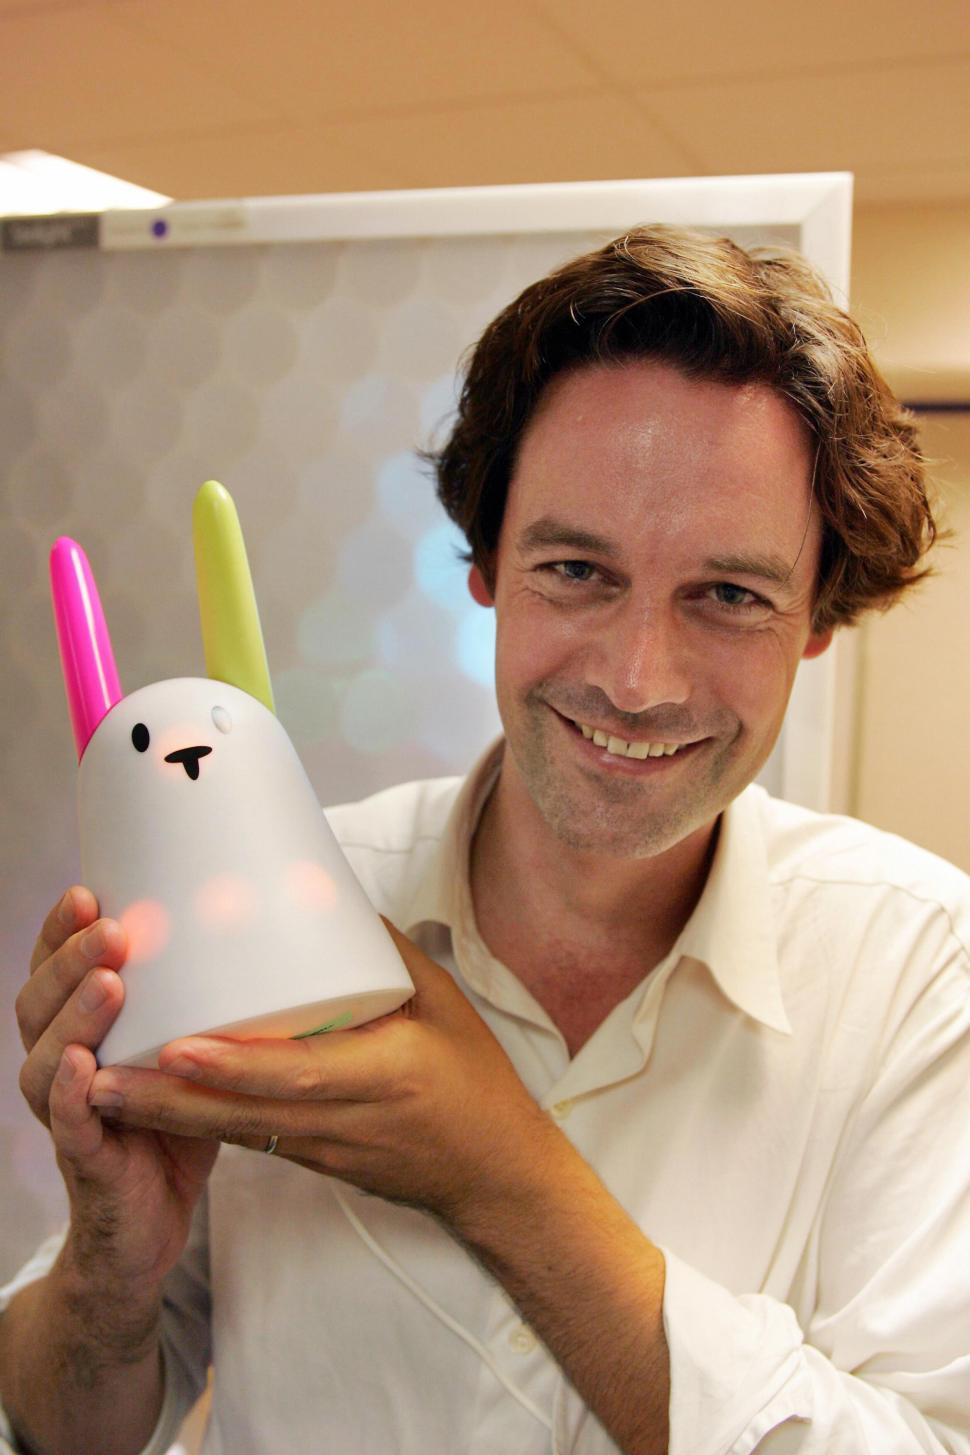 Paris, FRANCE:  Olivier Mevel, head of Violet company, poses, 15 September 2005, with a 'Nabaztag' the first ever released wide-audience communicating device. Along with Violet's co-founder Rafi Haladjian, Mevel called the device ' Nabaztag', which means rabbit in Armenian. It may be connected to other Nabaztags through the Internet, using DSL and wireless means, and thus may, among other things,  play MP3, warn when emails are delivered and do so even when its owner's computer is not connected, thanks to the www.nabaztag.com website it'll be registered to. AFP PHOTO DAMIEN MEYER